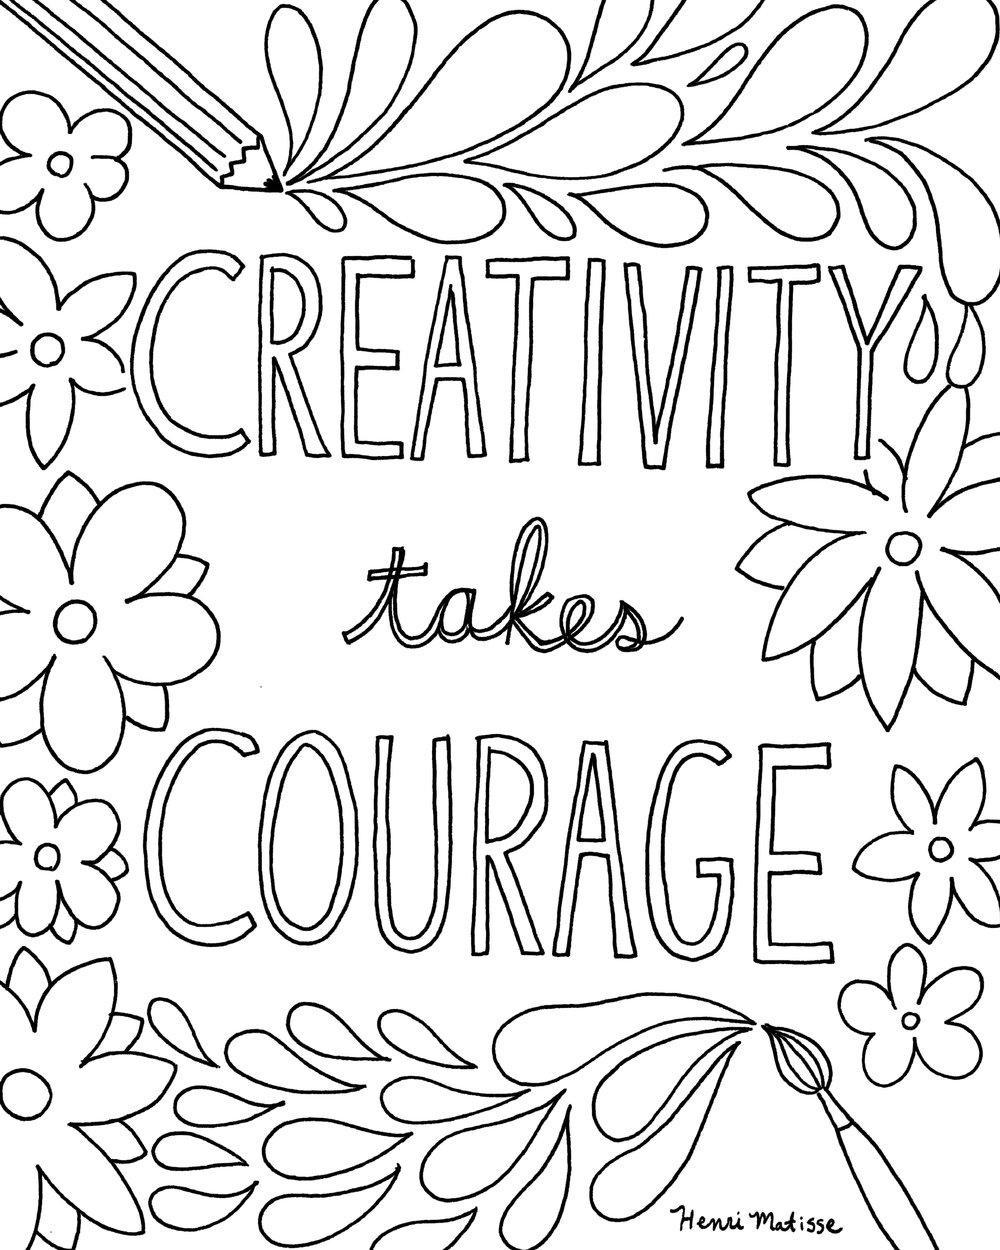 Coloring book download zip - Coloring Book Page Download Creativity Takes Courage Free